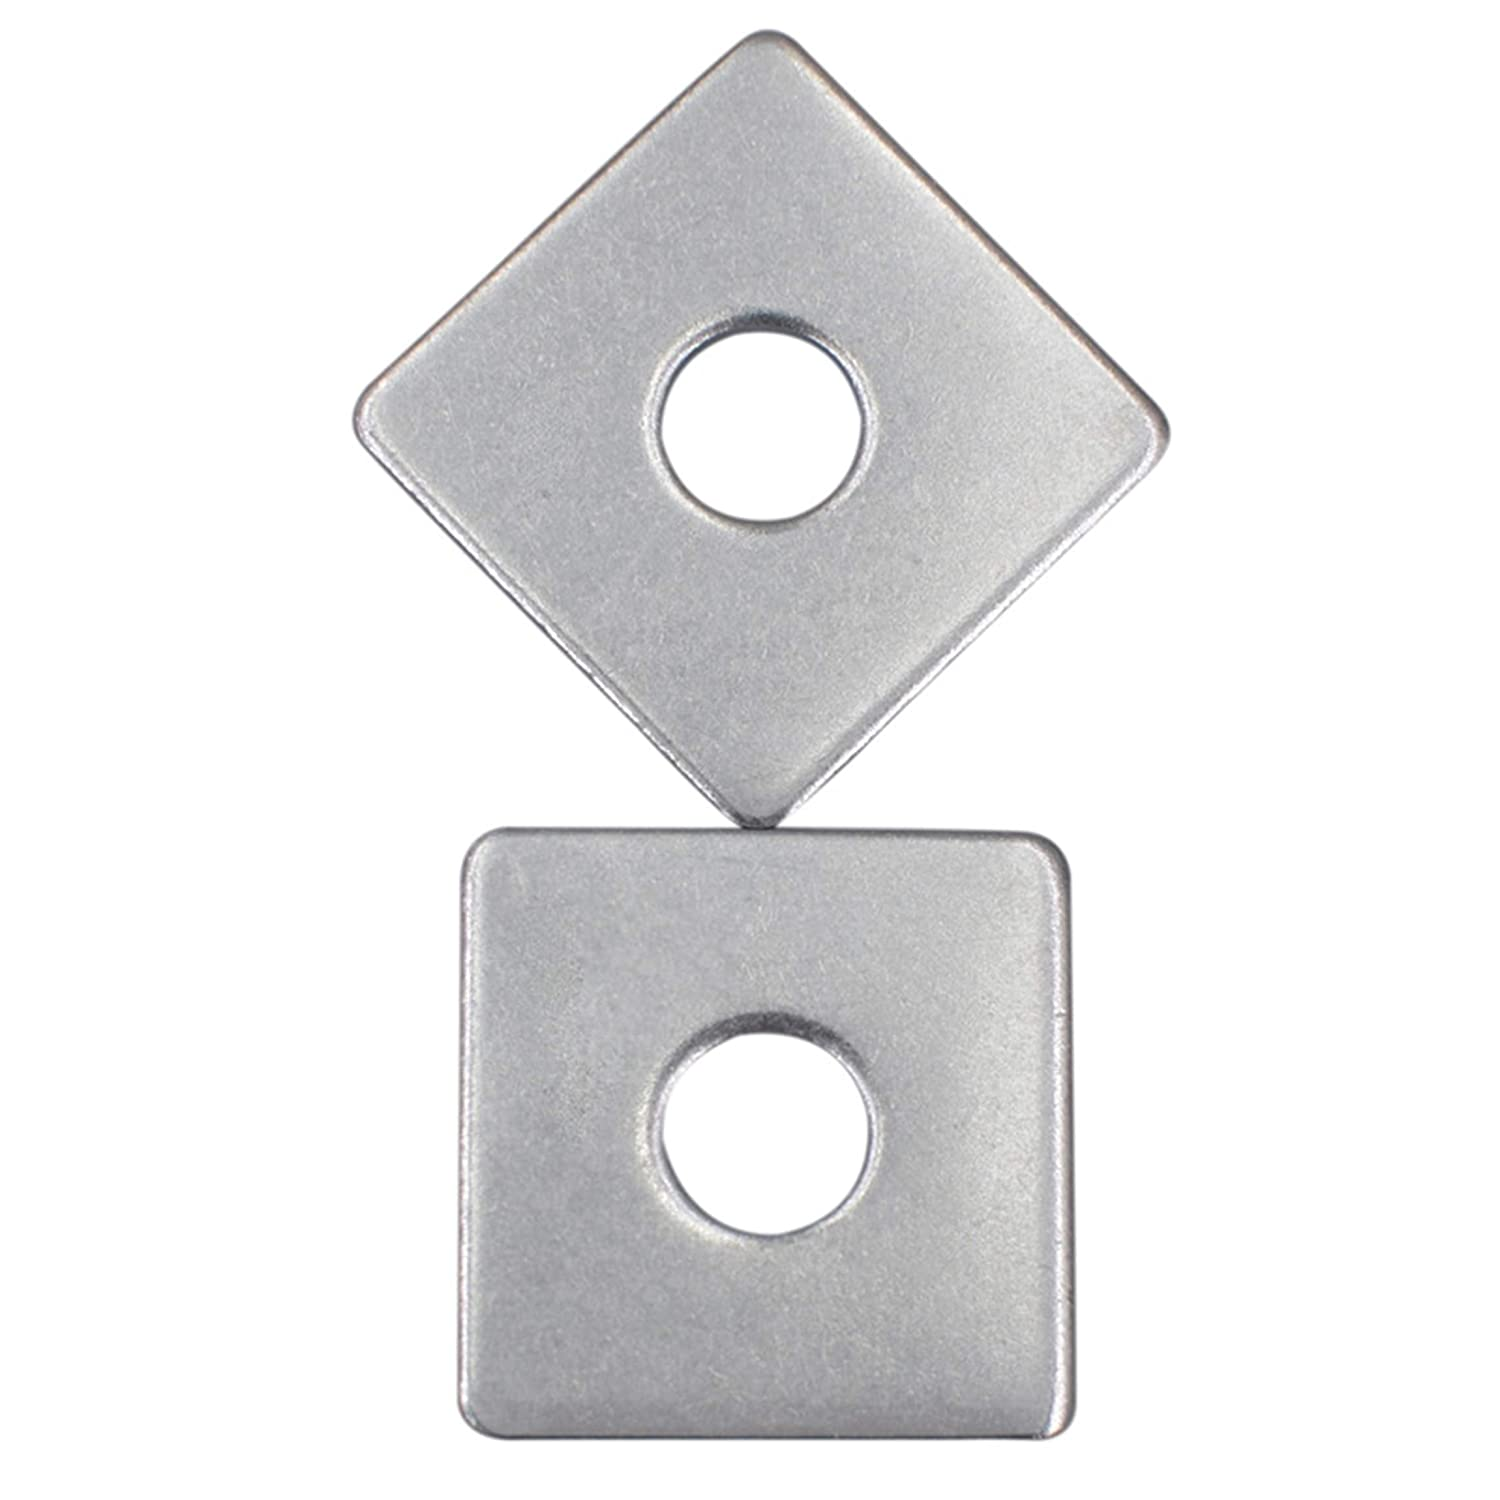 HL1971Square Washer Square Pole Gasket Suitable fo Fixed price Ranking TOP8 for sale Ring Groove